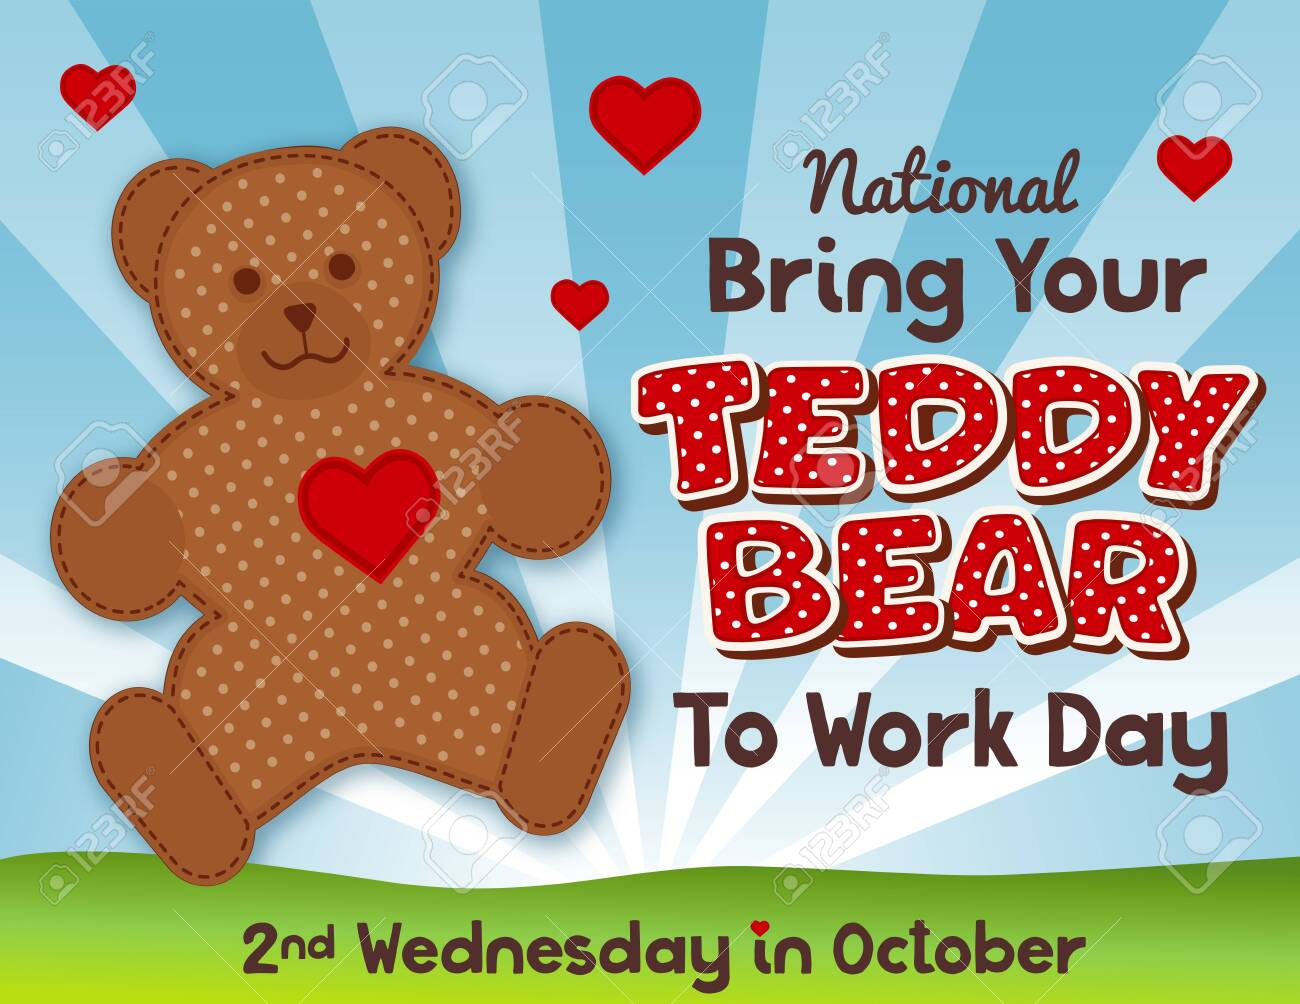 Bring Your Teddy Bear to Work and School Day, national holiday in USA on second Wednesday in October, hearts and love, grass lawn, blue sky background. Don't forget your teddy bear! - 125108999